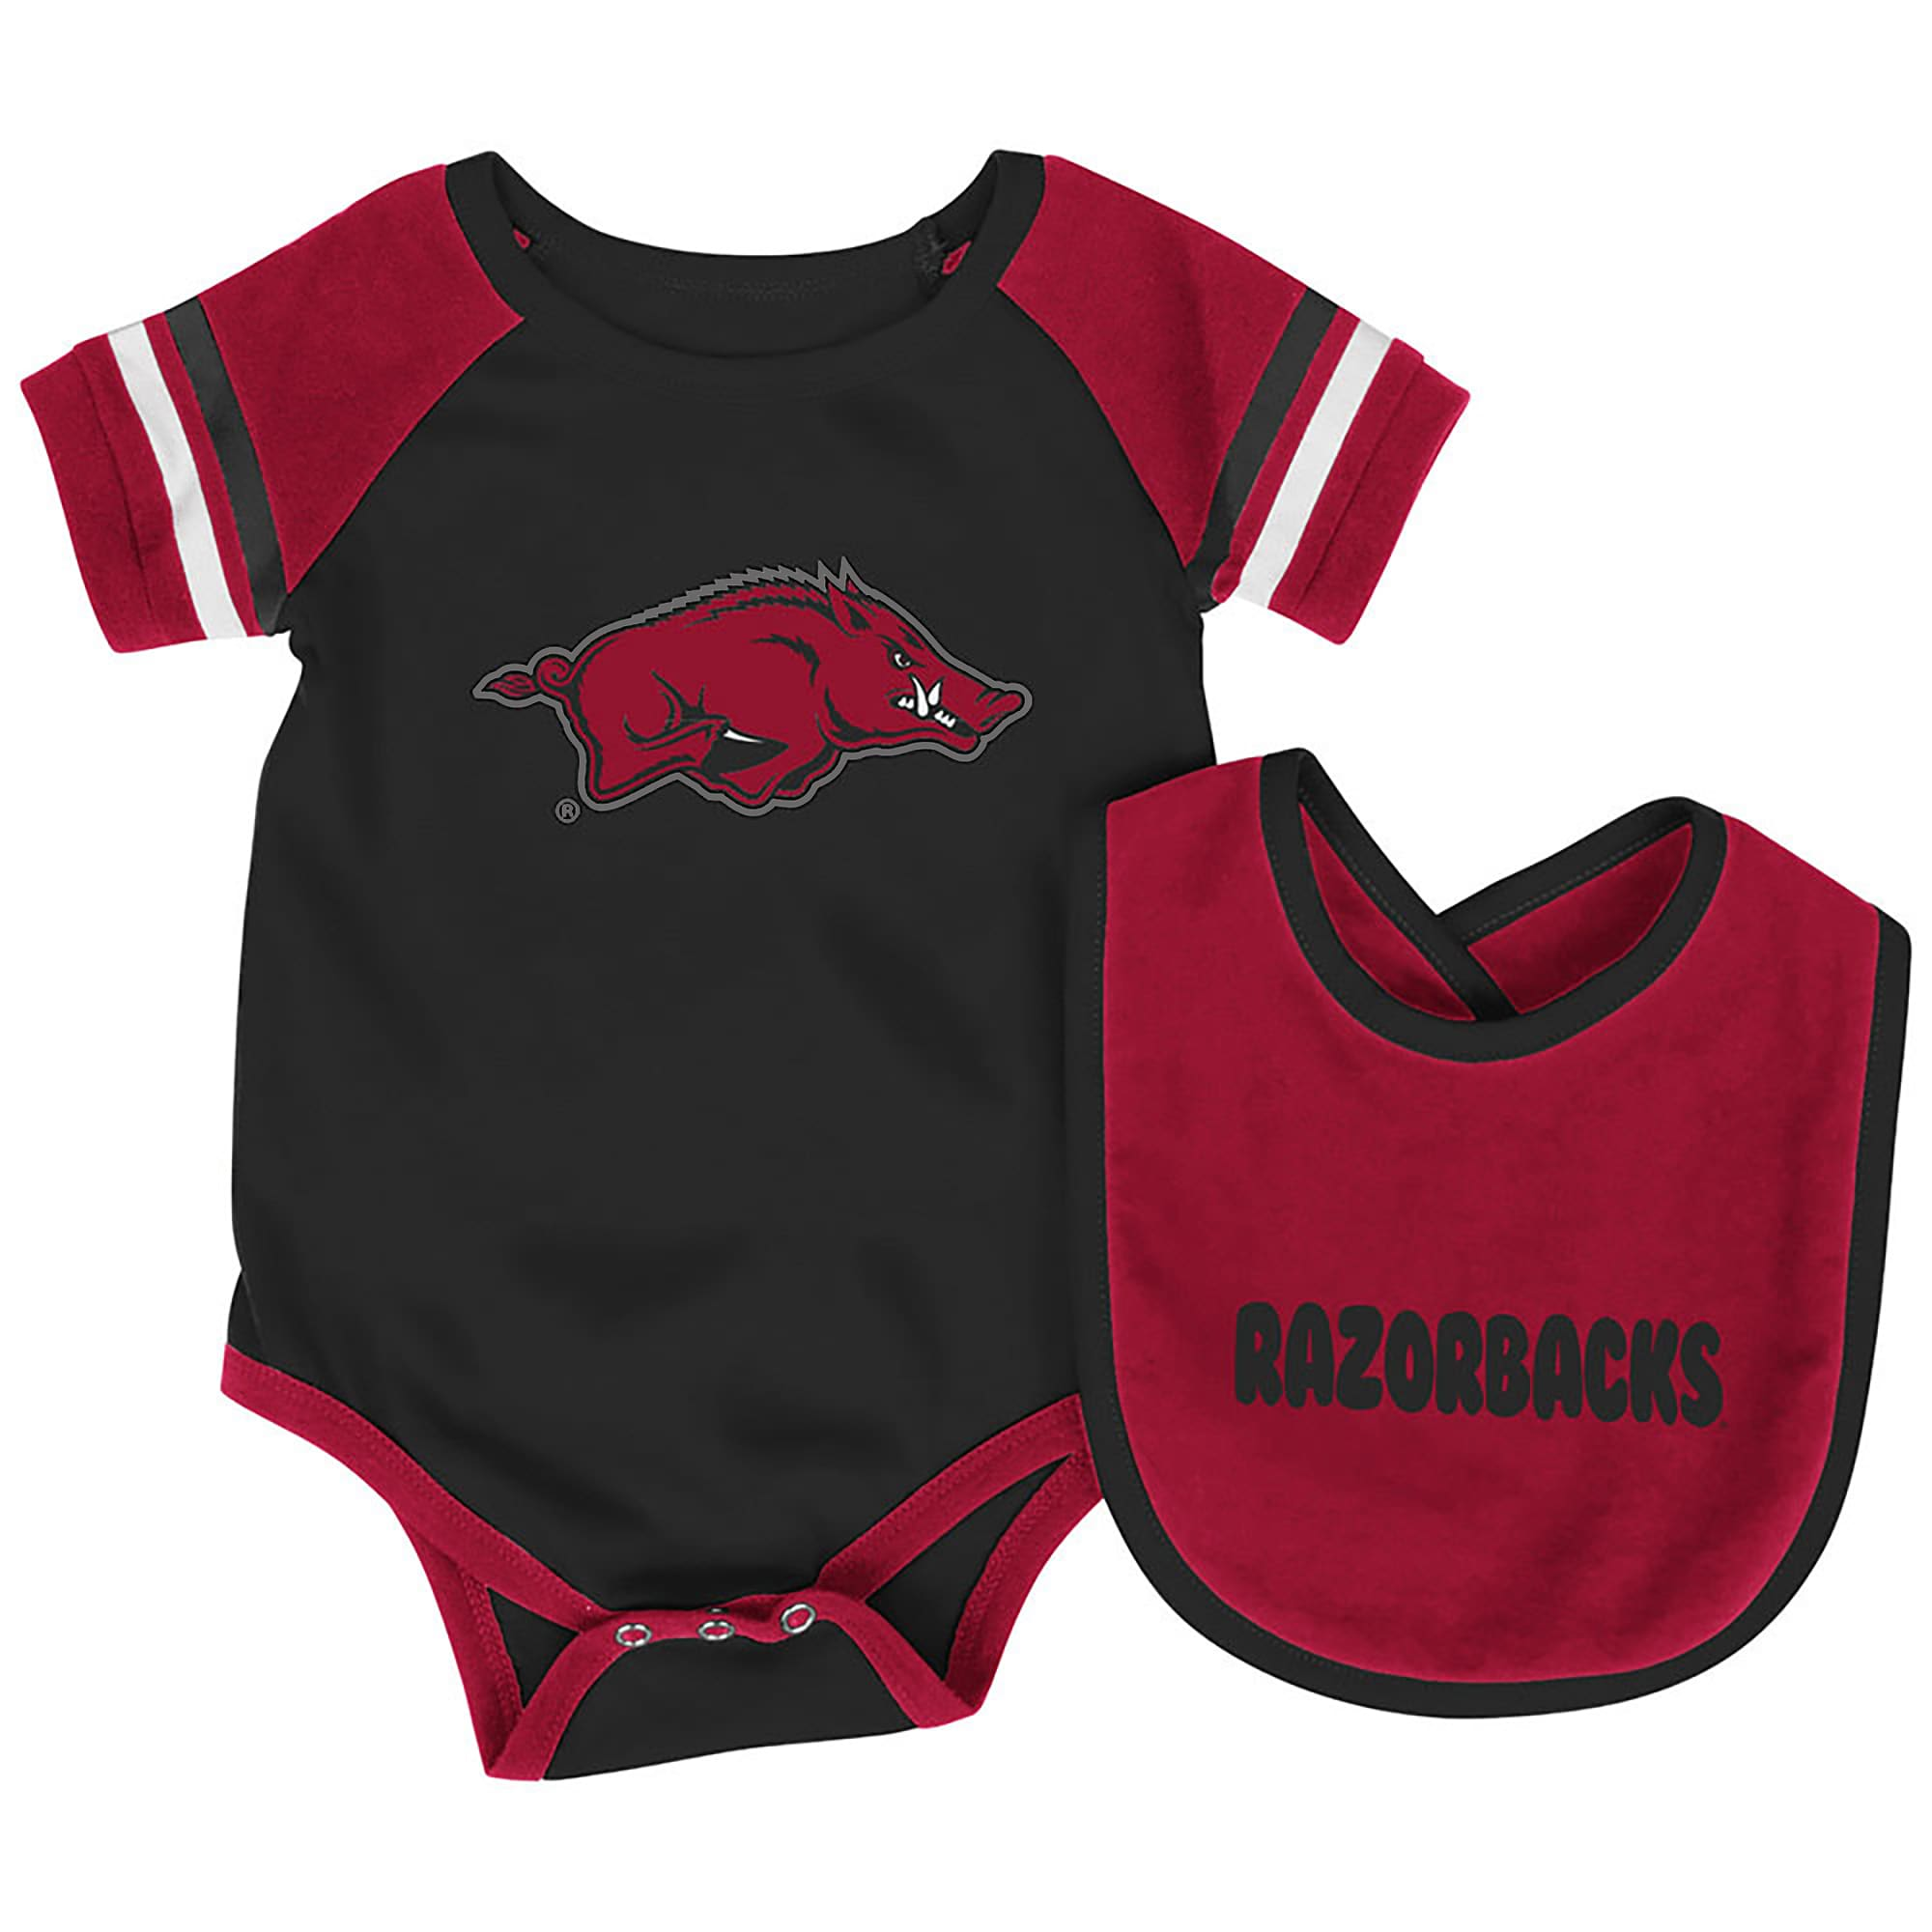 Indiana University Hoosiers Infant Set-One Piece//Bib//Booties--3-6 OR 6-9 Months